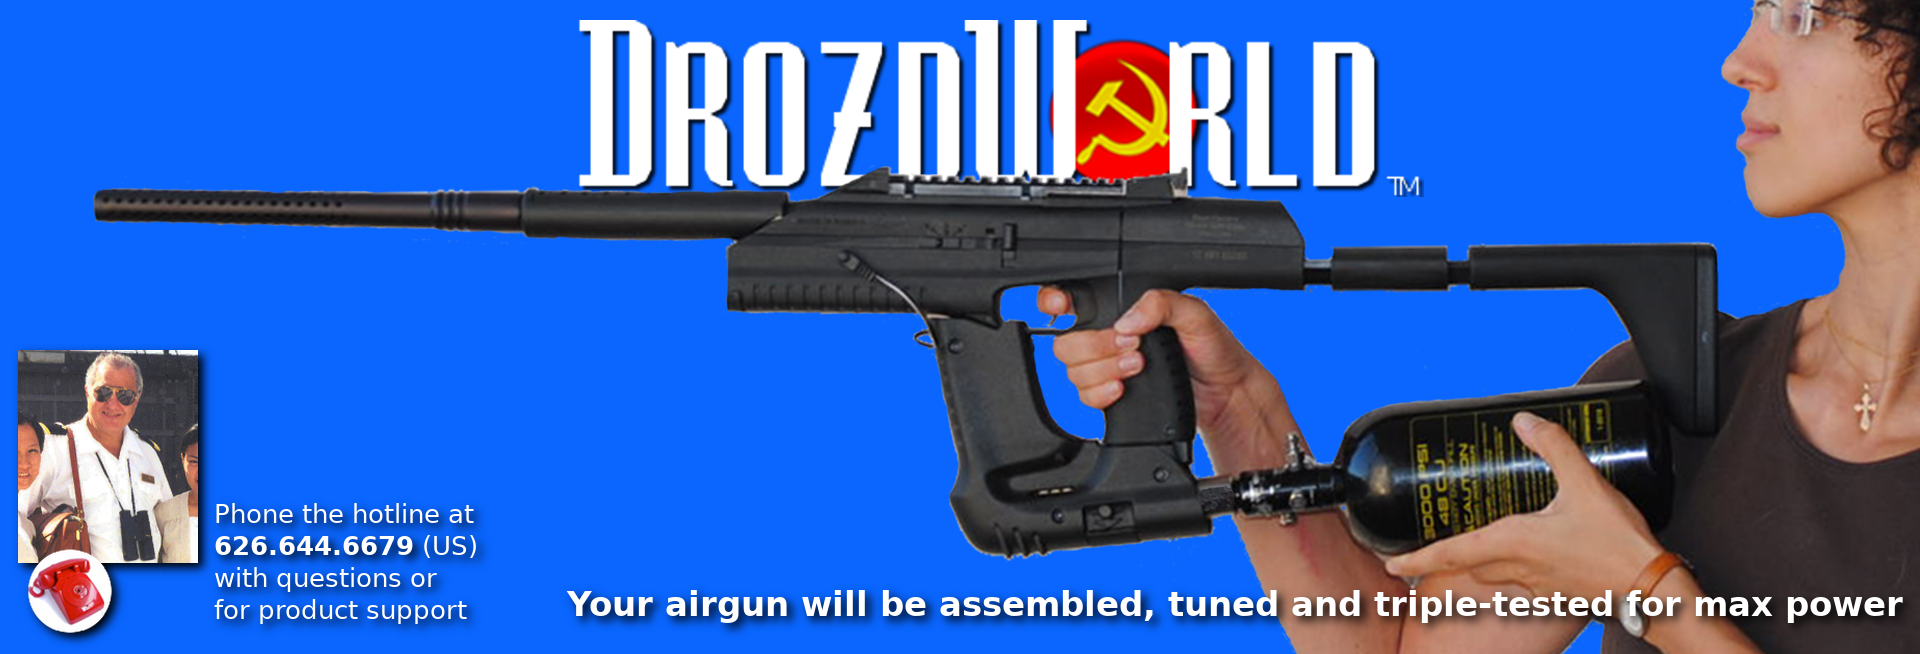 EXCLUSIVE! New Drozd Blackbirds with Full Auto-Fire Chip Installed!